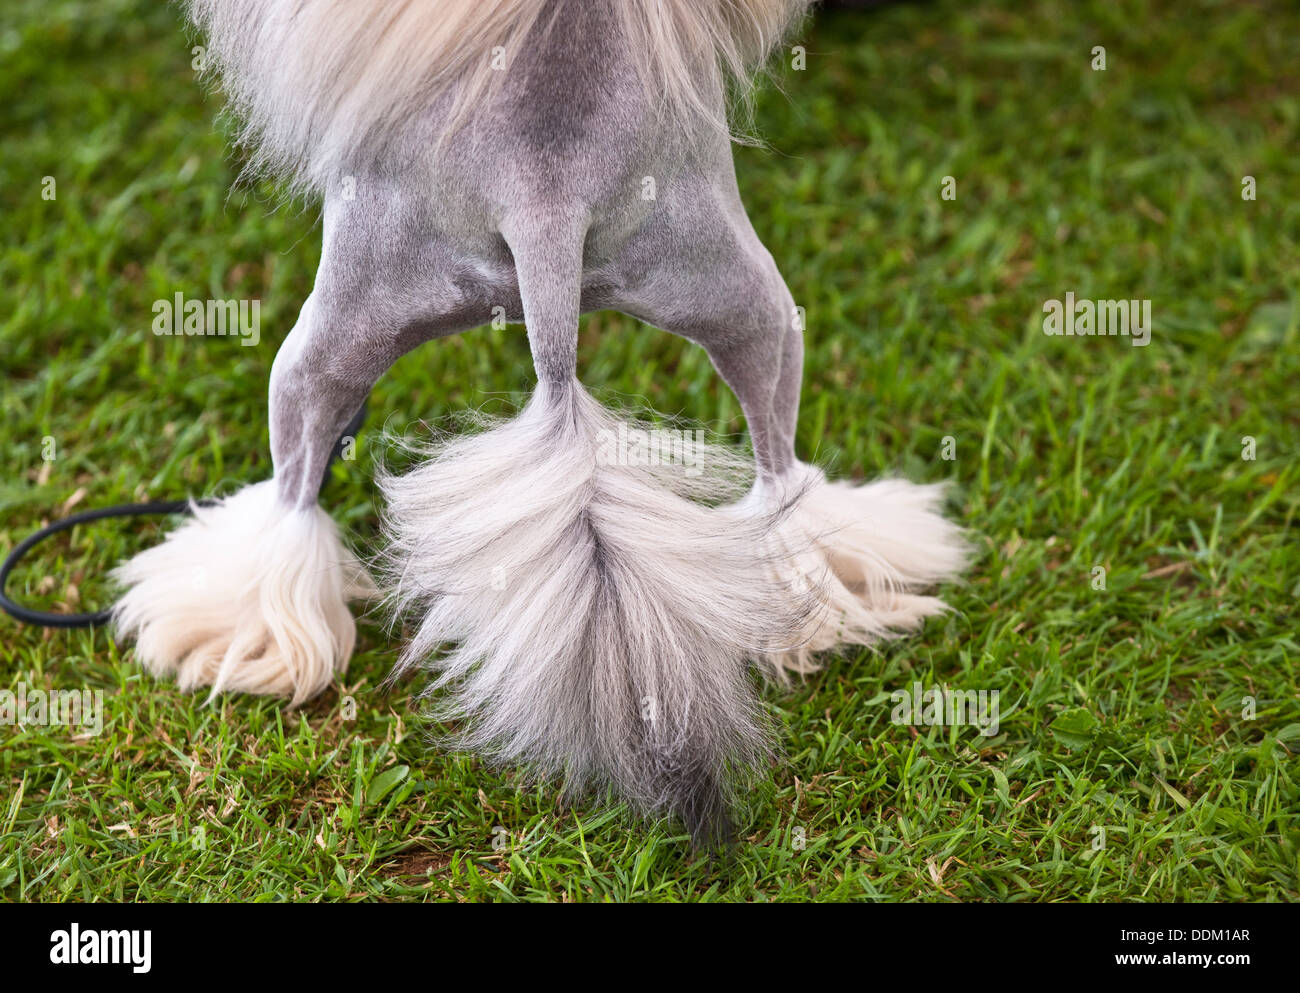 Chinese Crested Dog rear - Stock Image